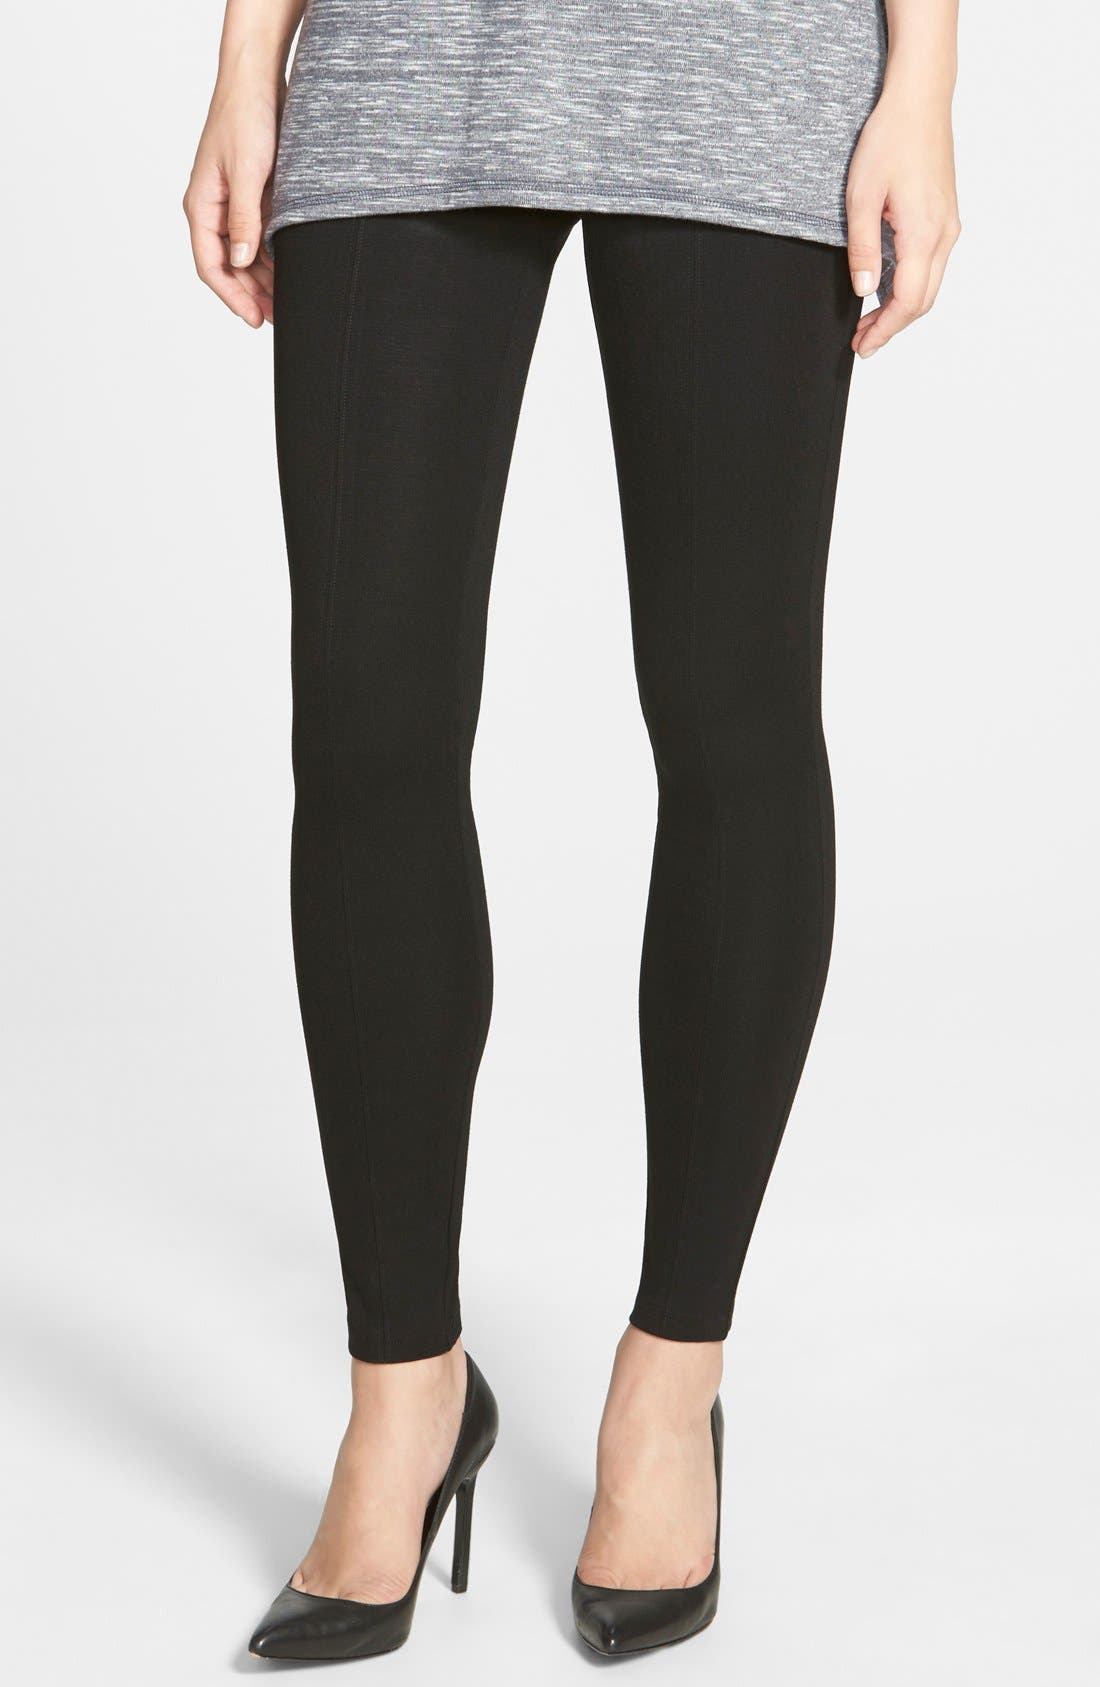 Blackout Leggings,                         Main,                         color, Black